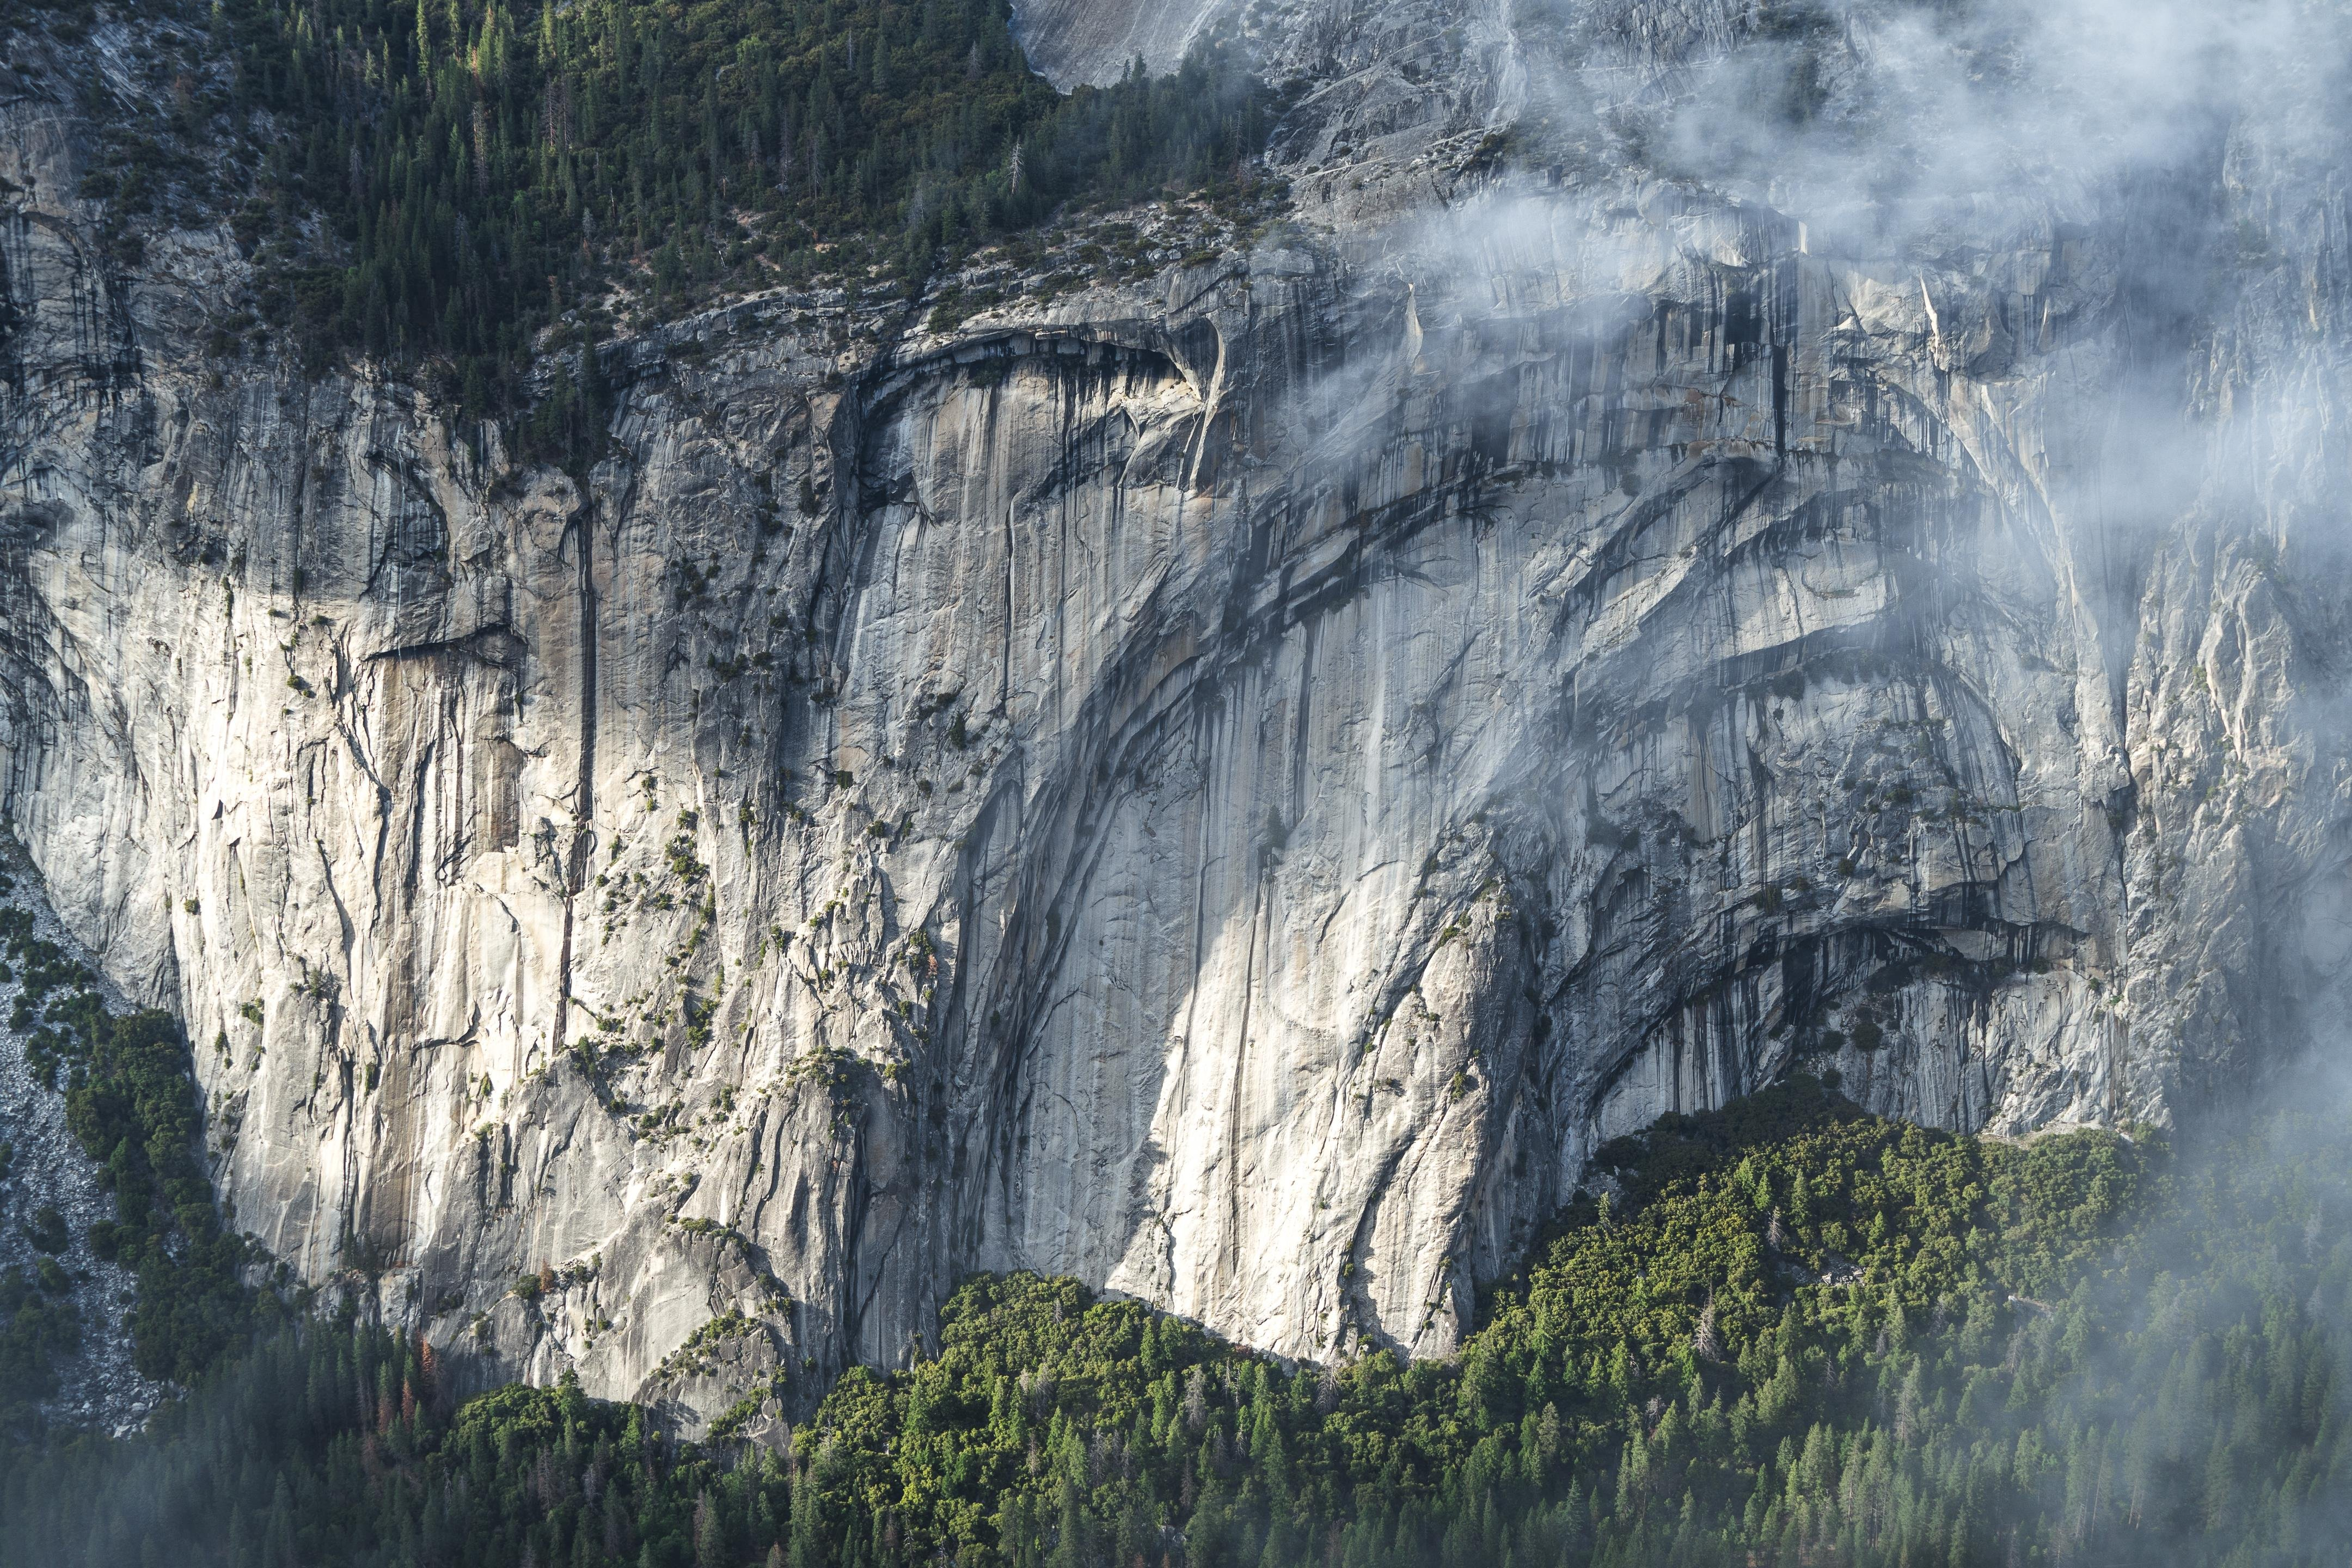 Yosemite 4k Wallpapers For Your Desktop Or Mobile Screen Free And Easy To Download